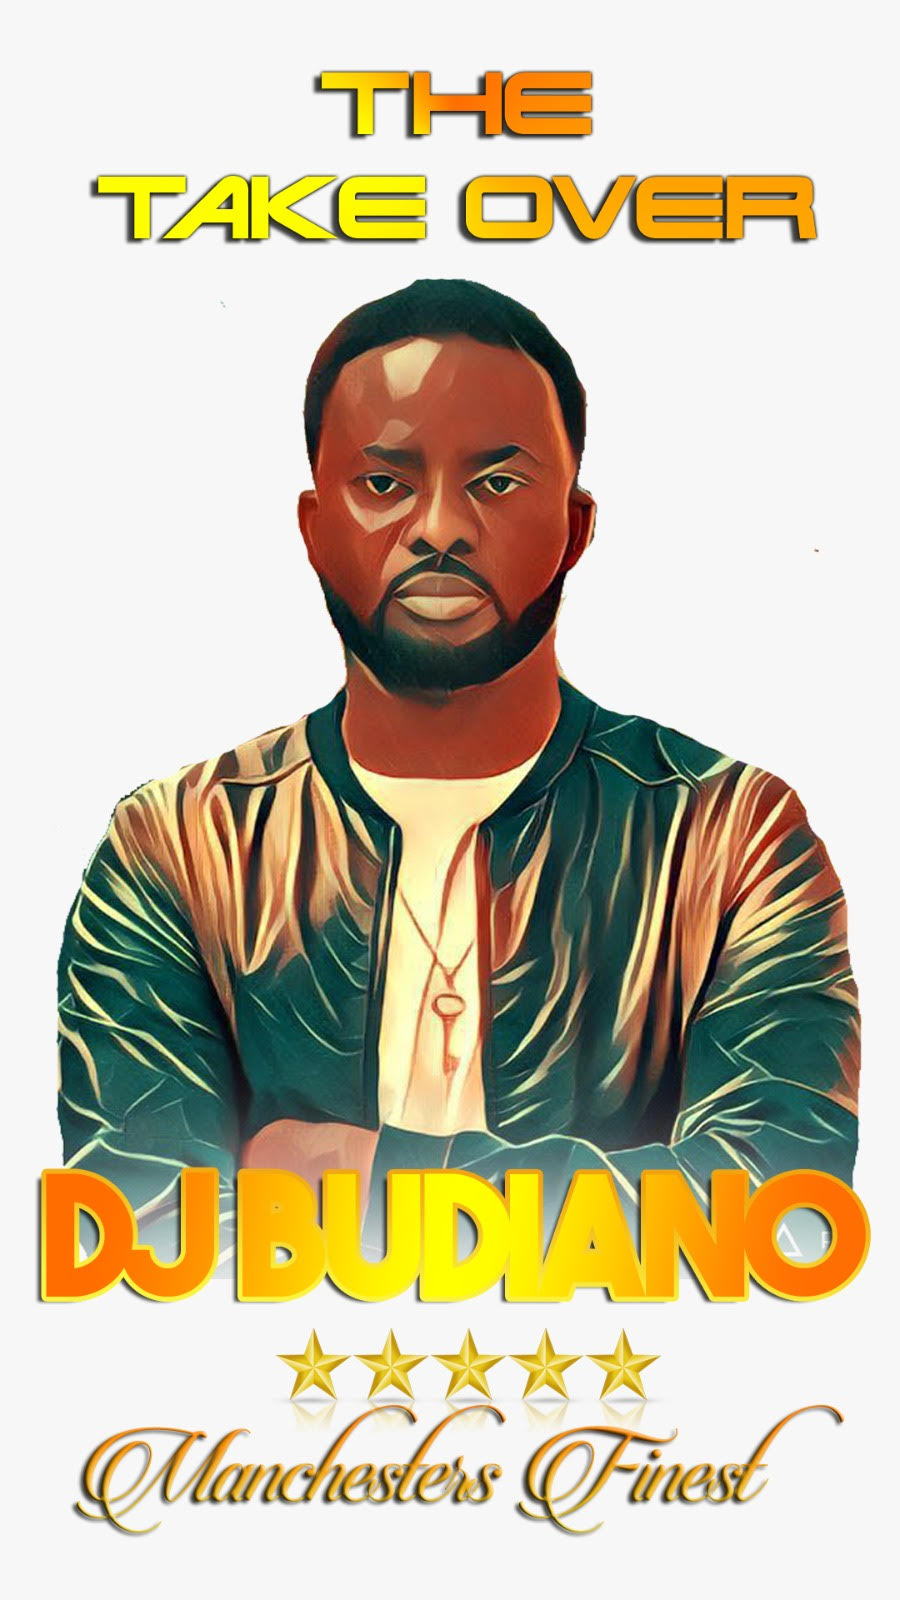 Mixtape] DJ Budiano - TakeOver Afrobeat Mix - REAL PUSSINESS